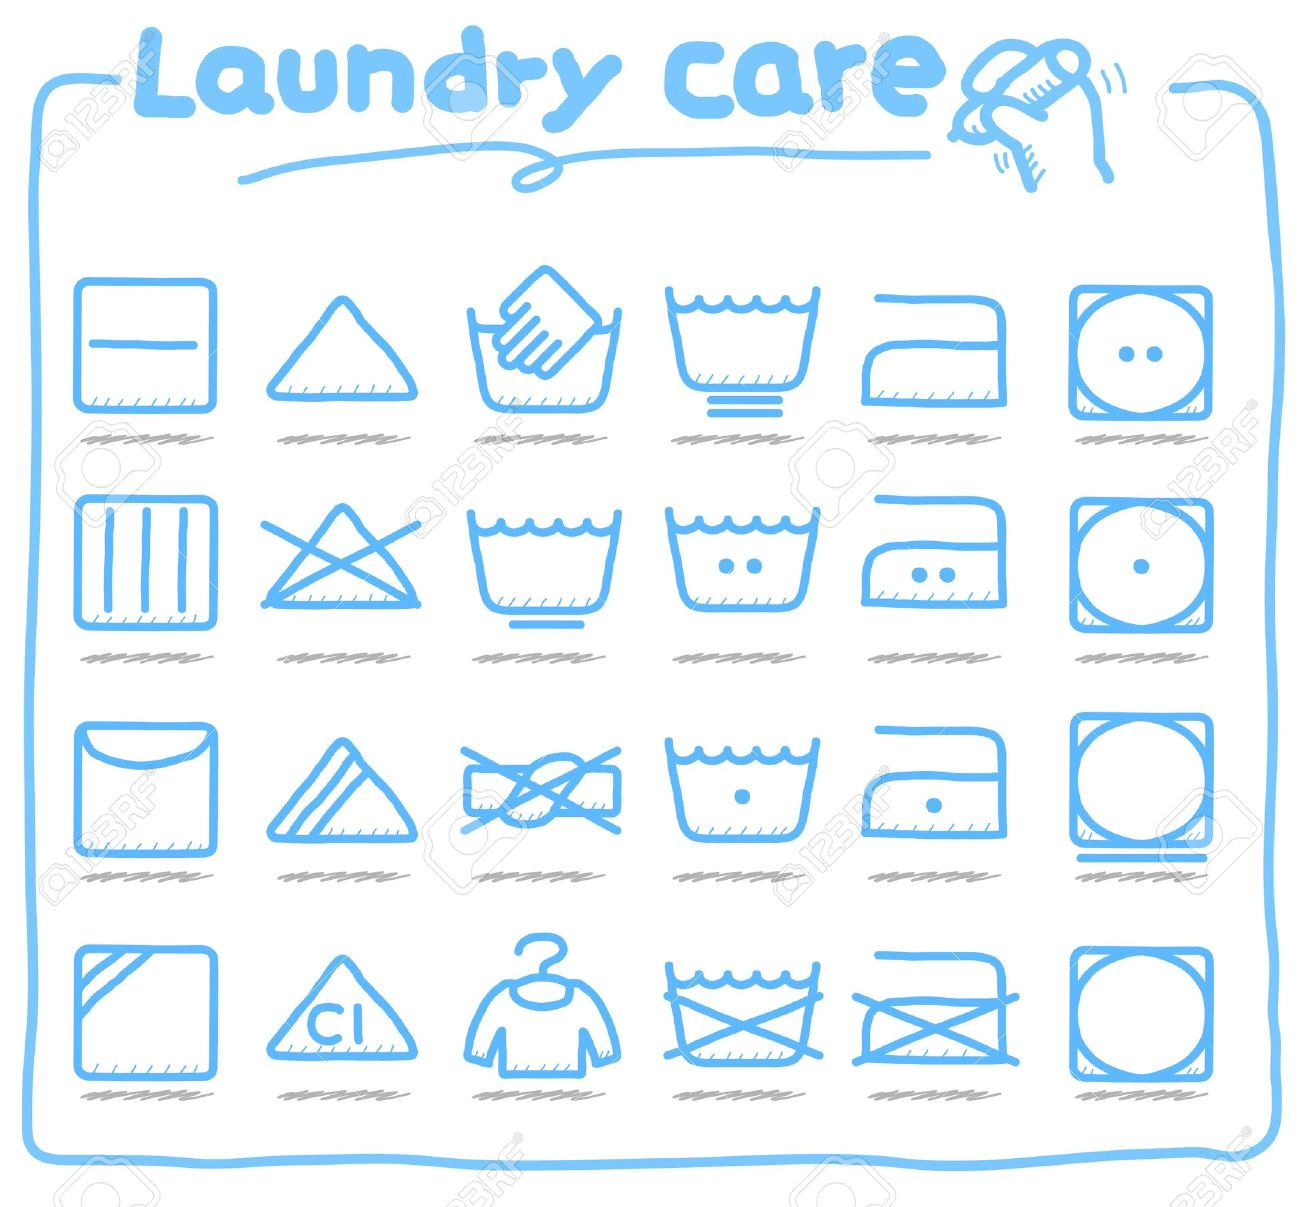 Cute hand drawn series stock photos by min6939 at 123 royalty free hand drawn laundry care washing symbols biocorpaavc